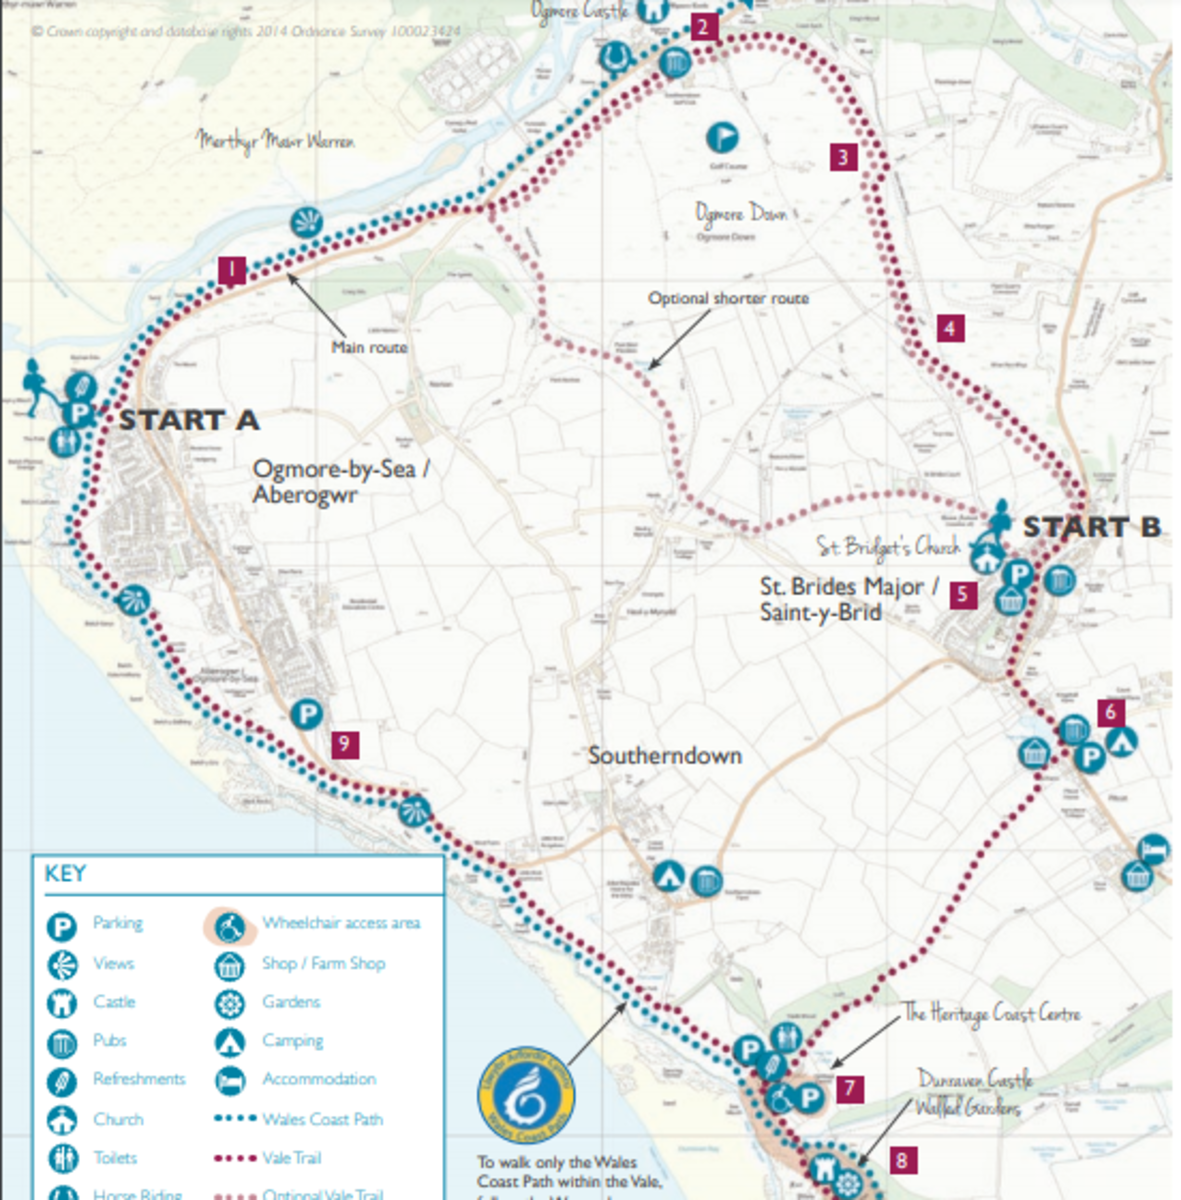 The route of the circular walk in and around Ogmore by Sea.